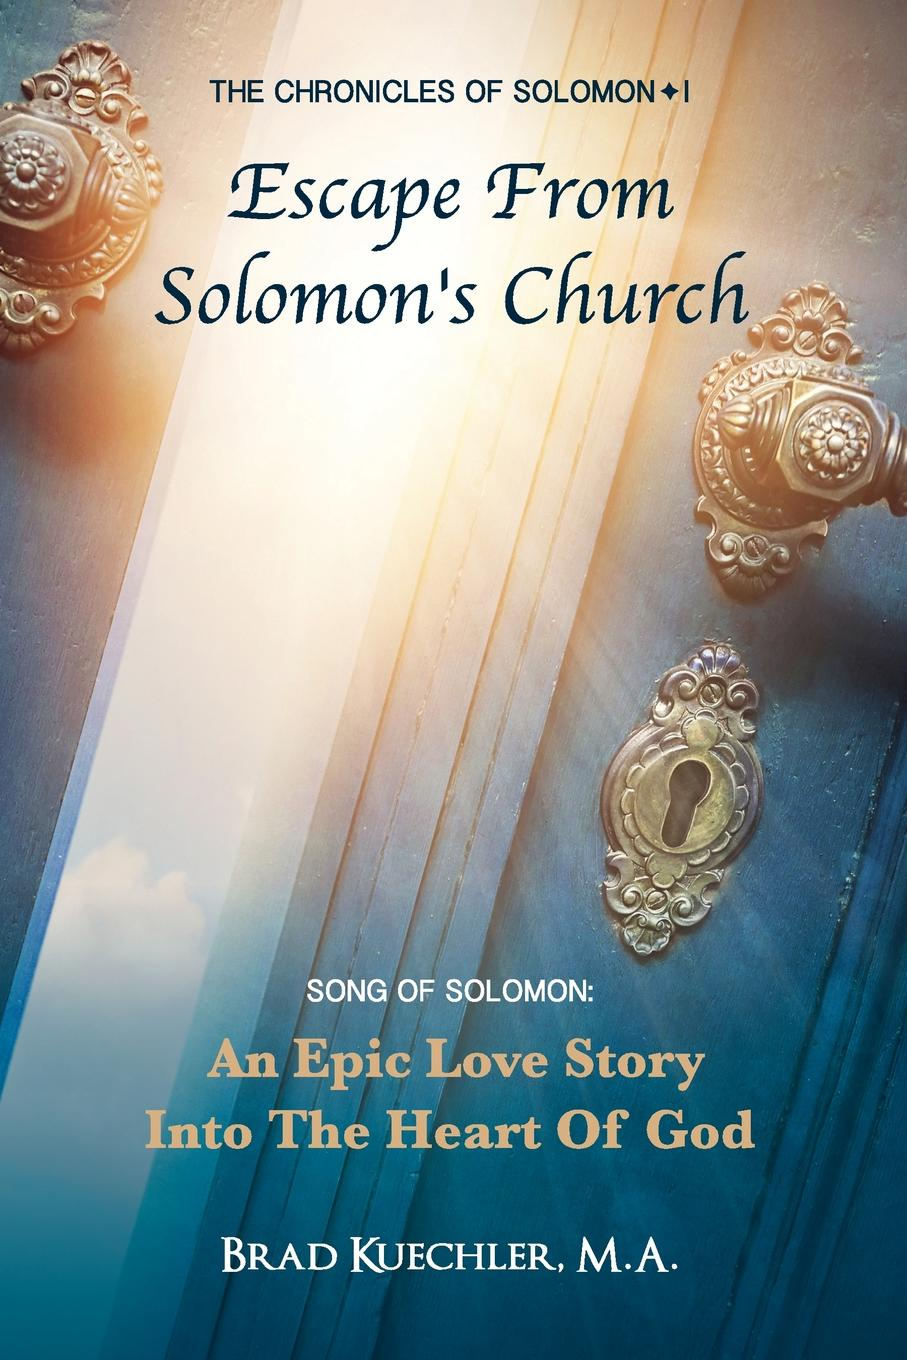 Brad Kuechler The Chronicles of Solomon I Escape From Solomon.s Church. Song Of Solomon: An Epic Love Story Into The Heart Of God цена и фото